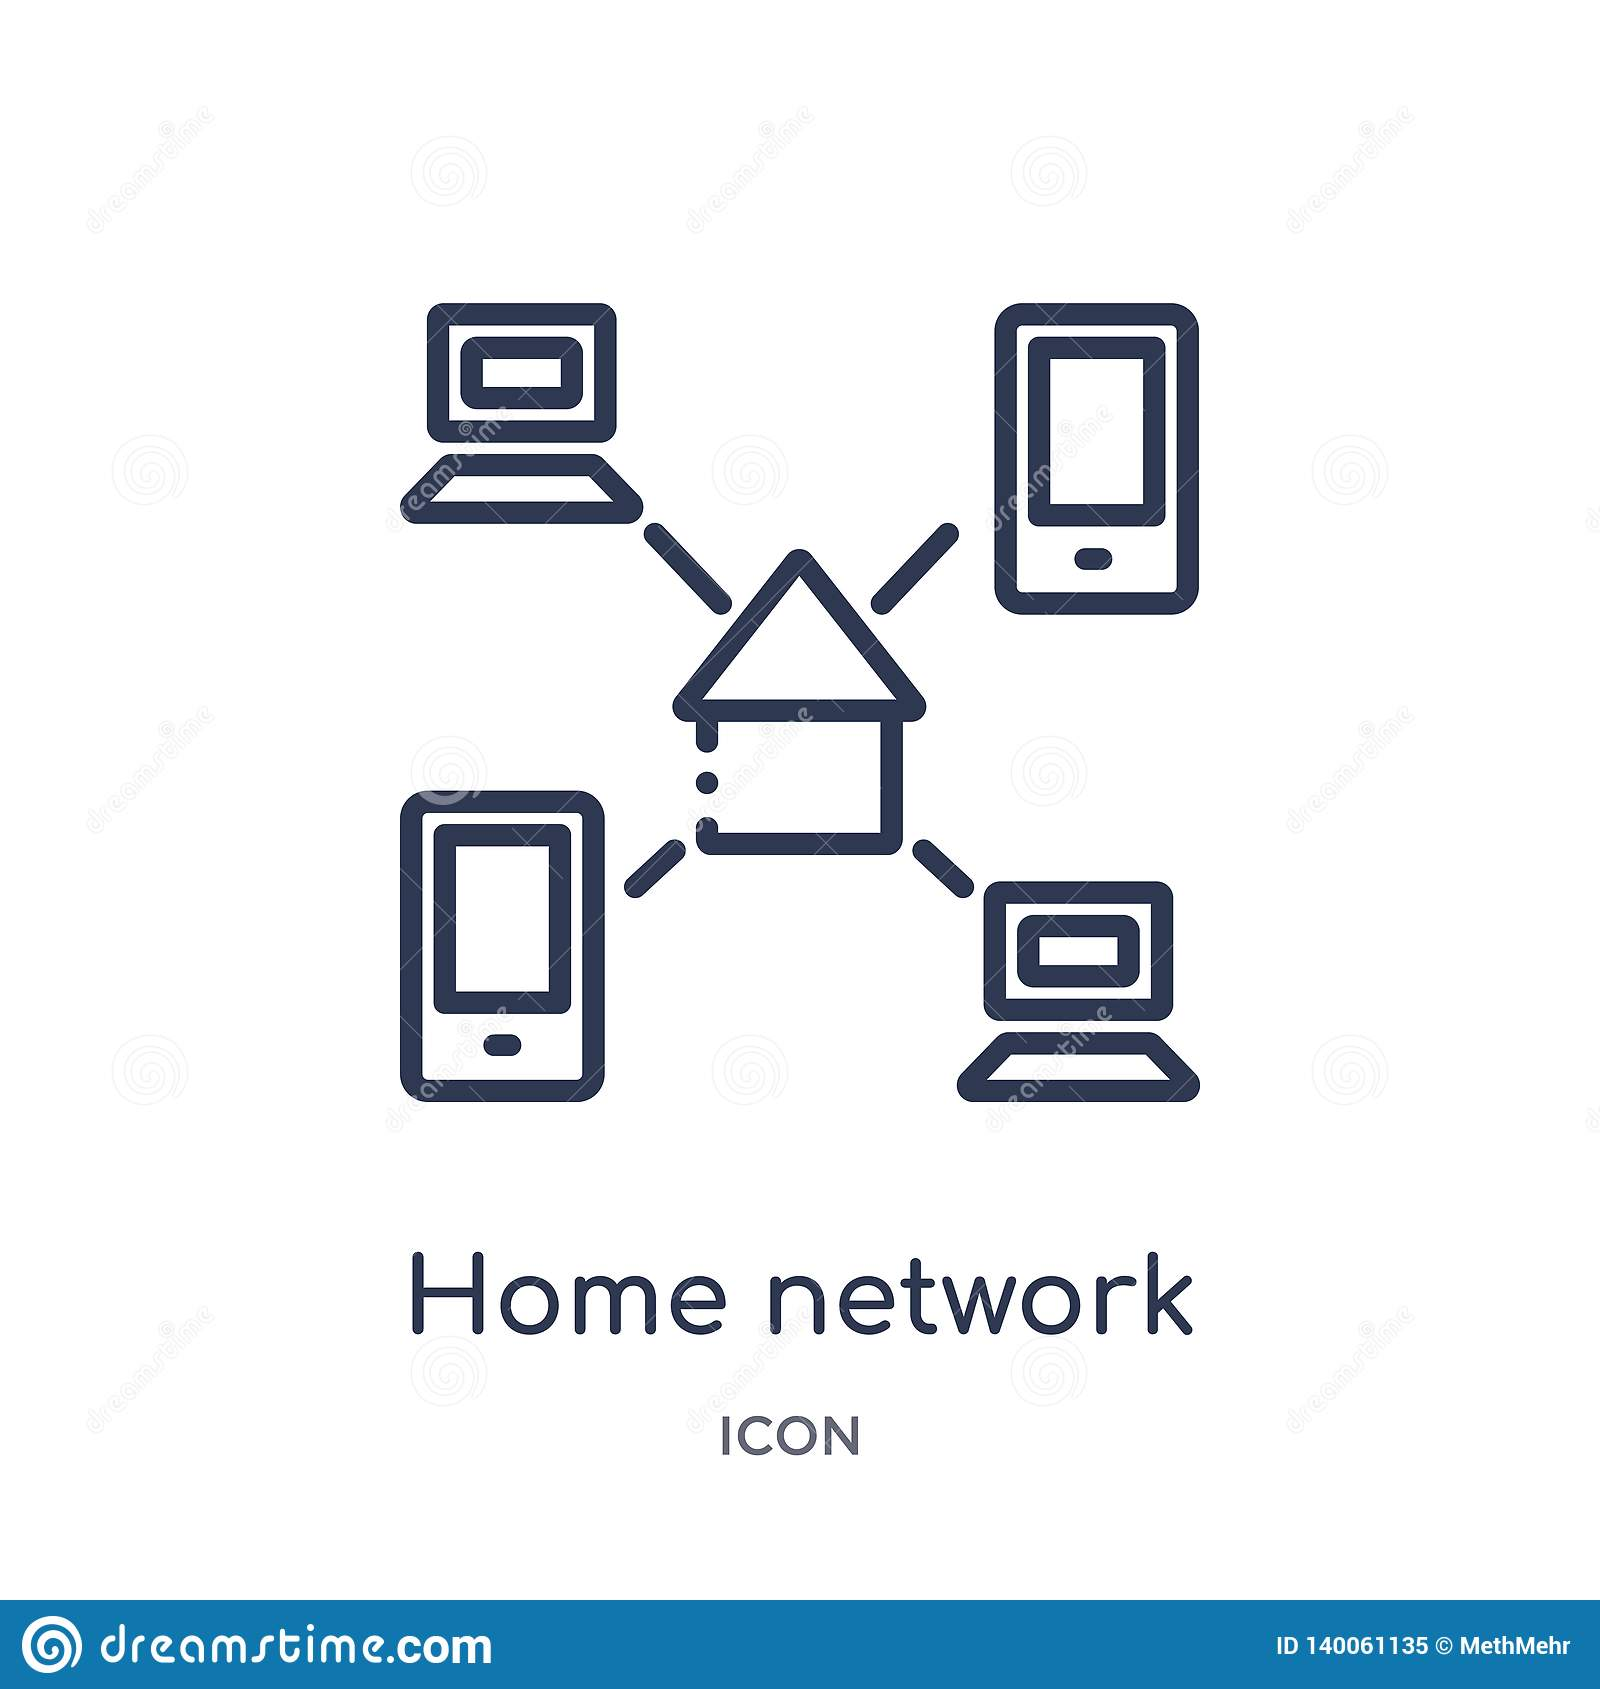 Linear home network icon from Internet security and networking outline collection. Thin line home network icon isolated on white